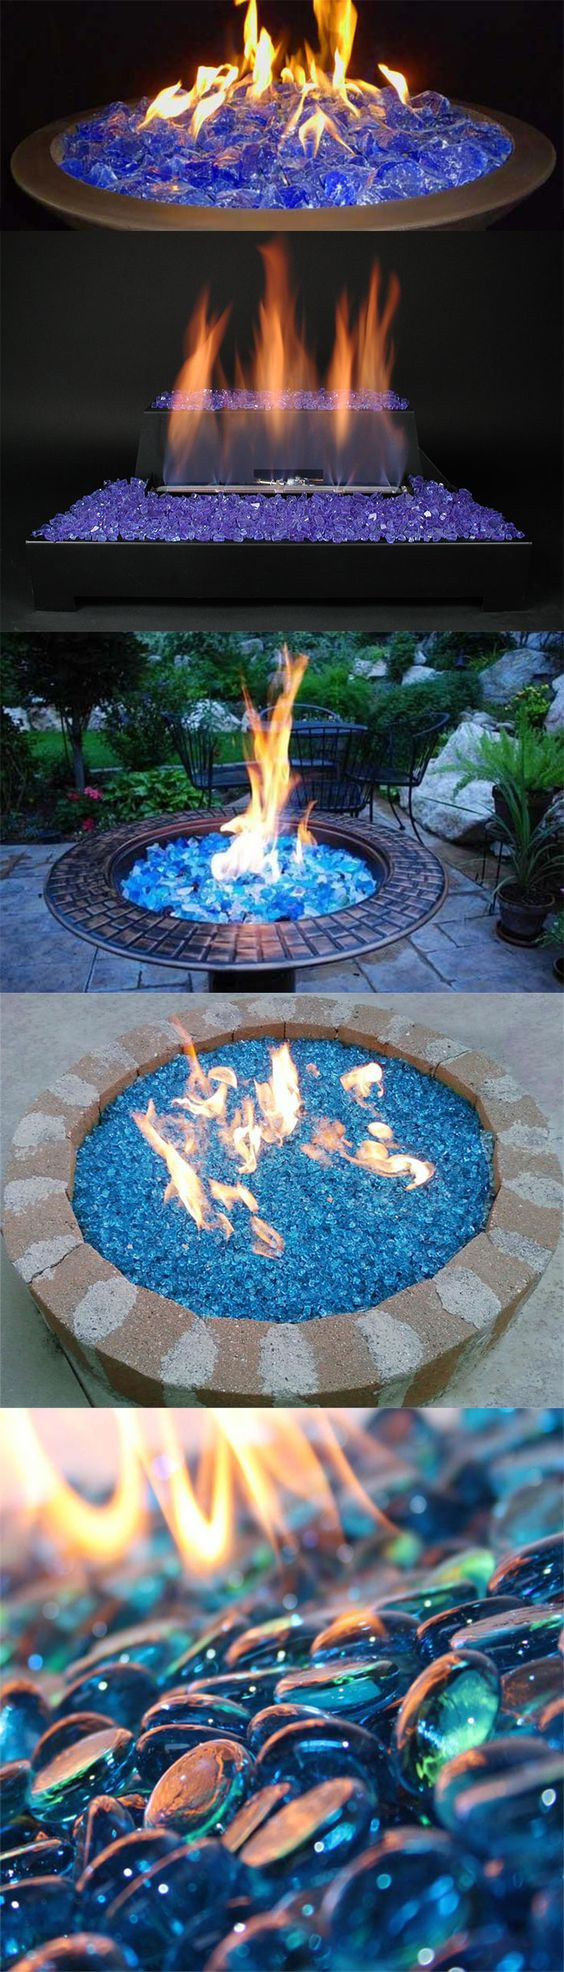 Fireglass dramatically changes your fireplace or fire pit. Replace dirty and tired looking fire logs, lava rocks or wood with elegant fireglass and dramati Architectural Landscape Design: